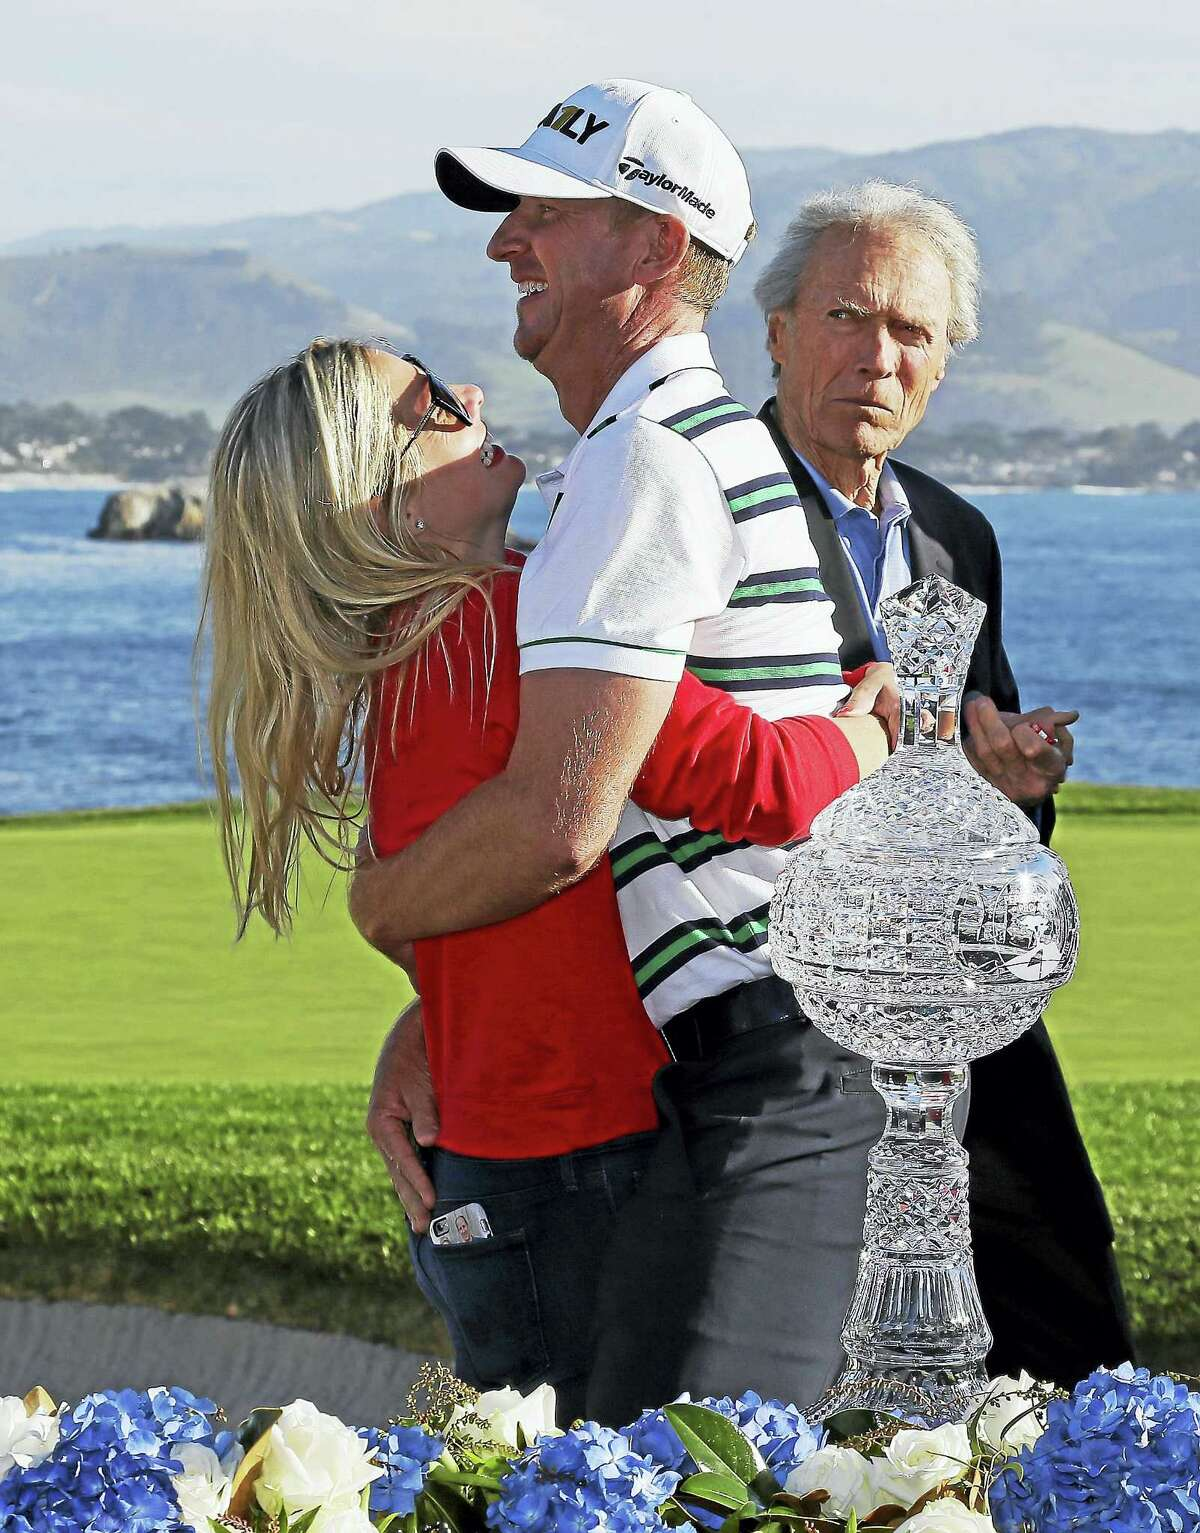 Vaughn Taylor is embraced by his wife, Leot, on the 18th green of the Pebble Beach Golf Links after winning the AT&T Pebble Beach National Pro-Am in February.